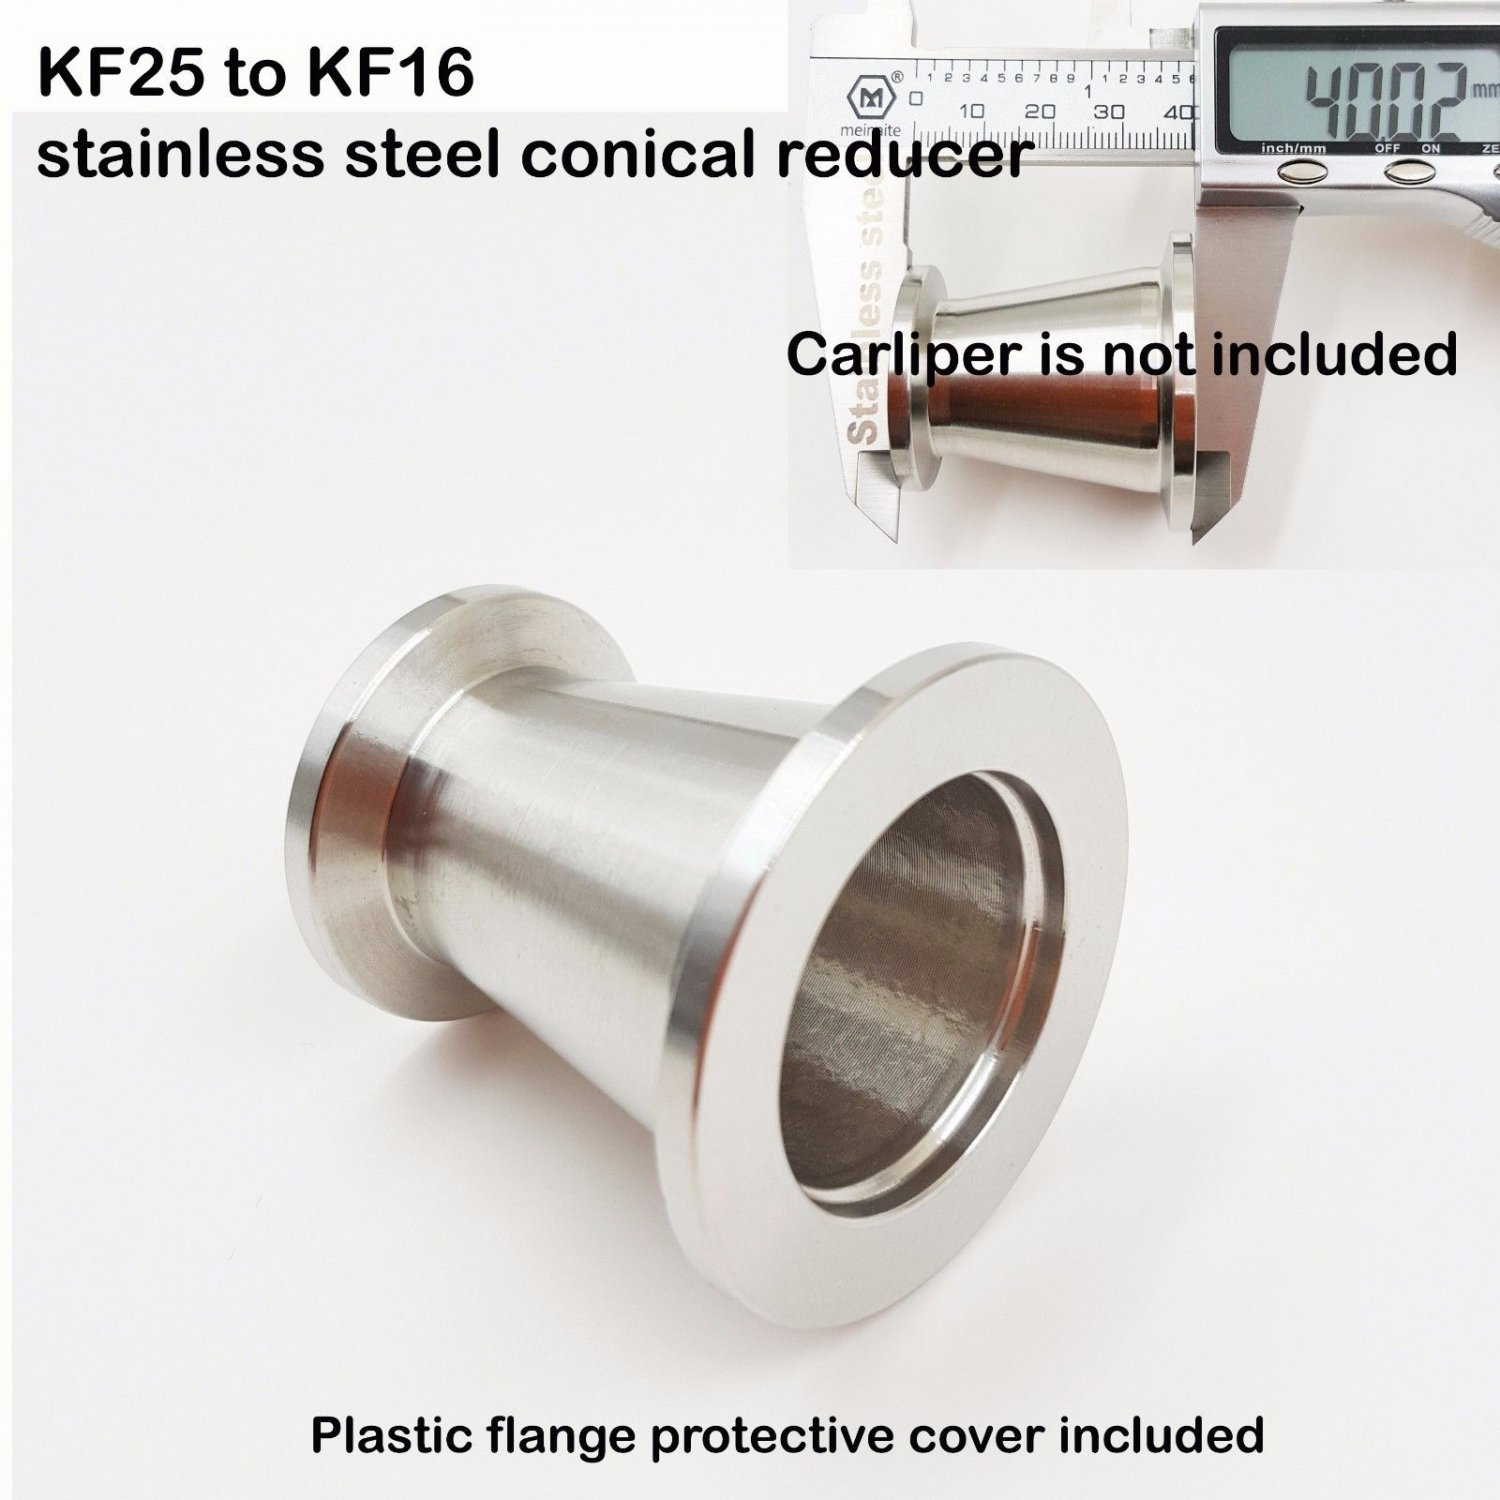 KF25 (NW25) to KF16 (NW16) Flange vacuum conical reducer, Stainless steel 304